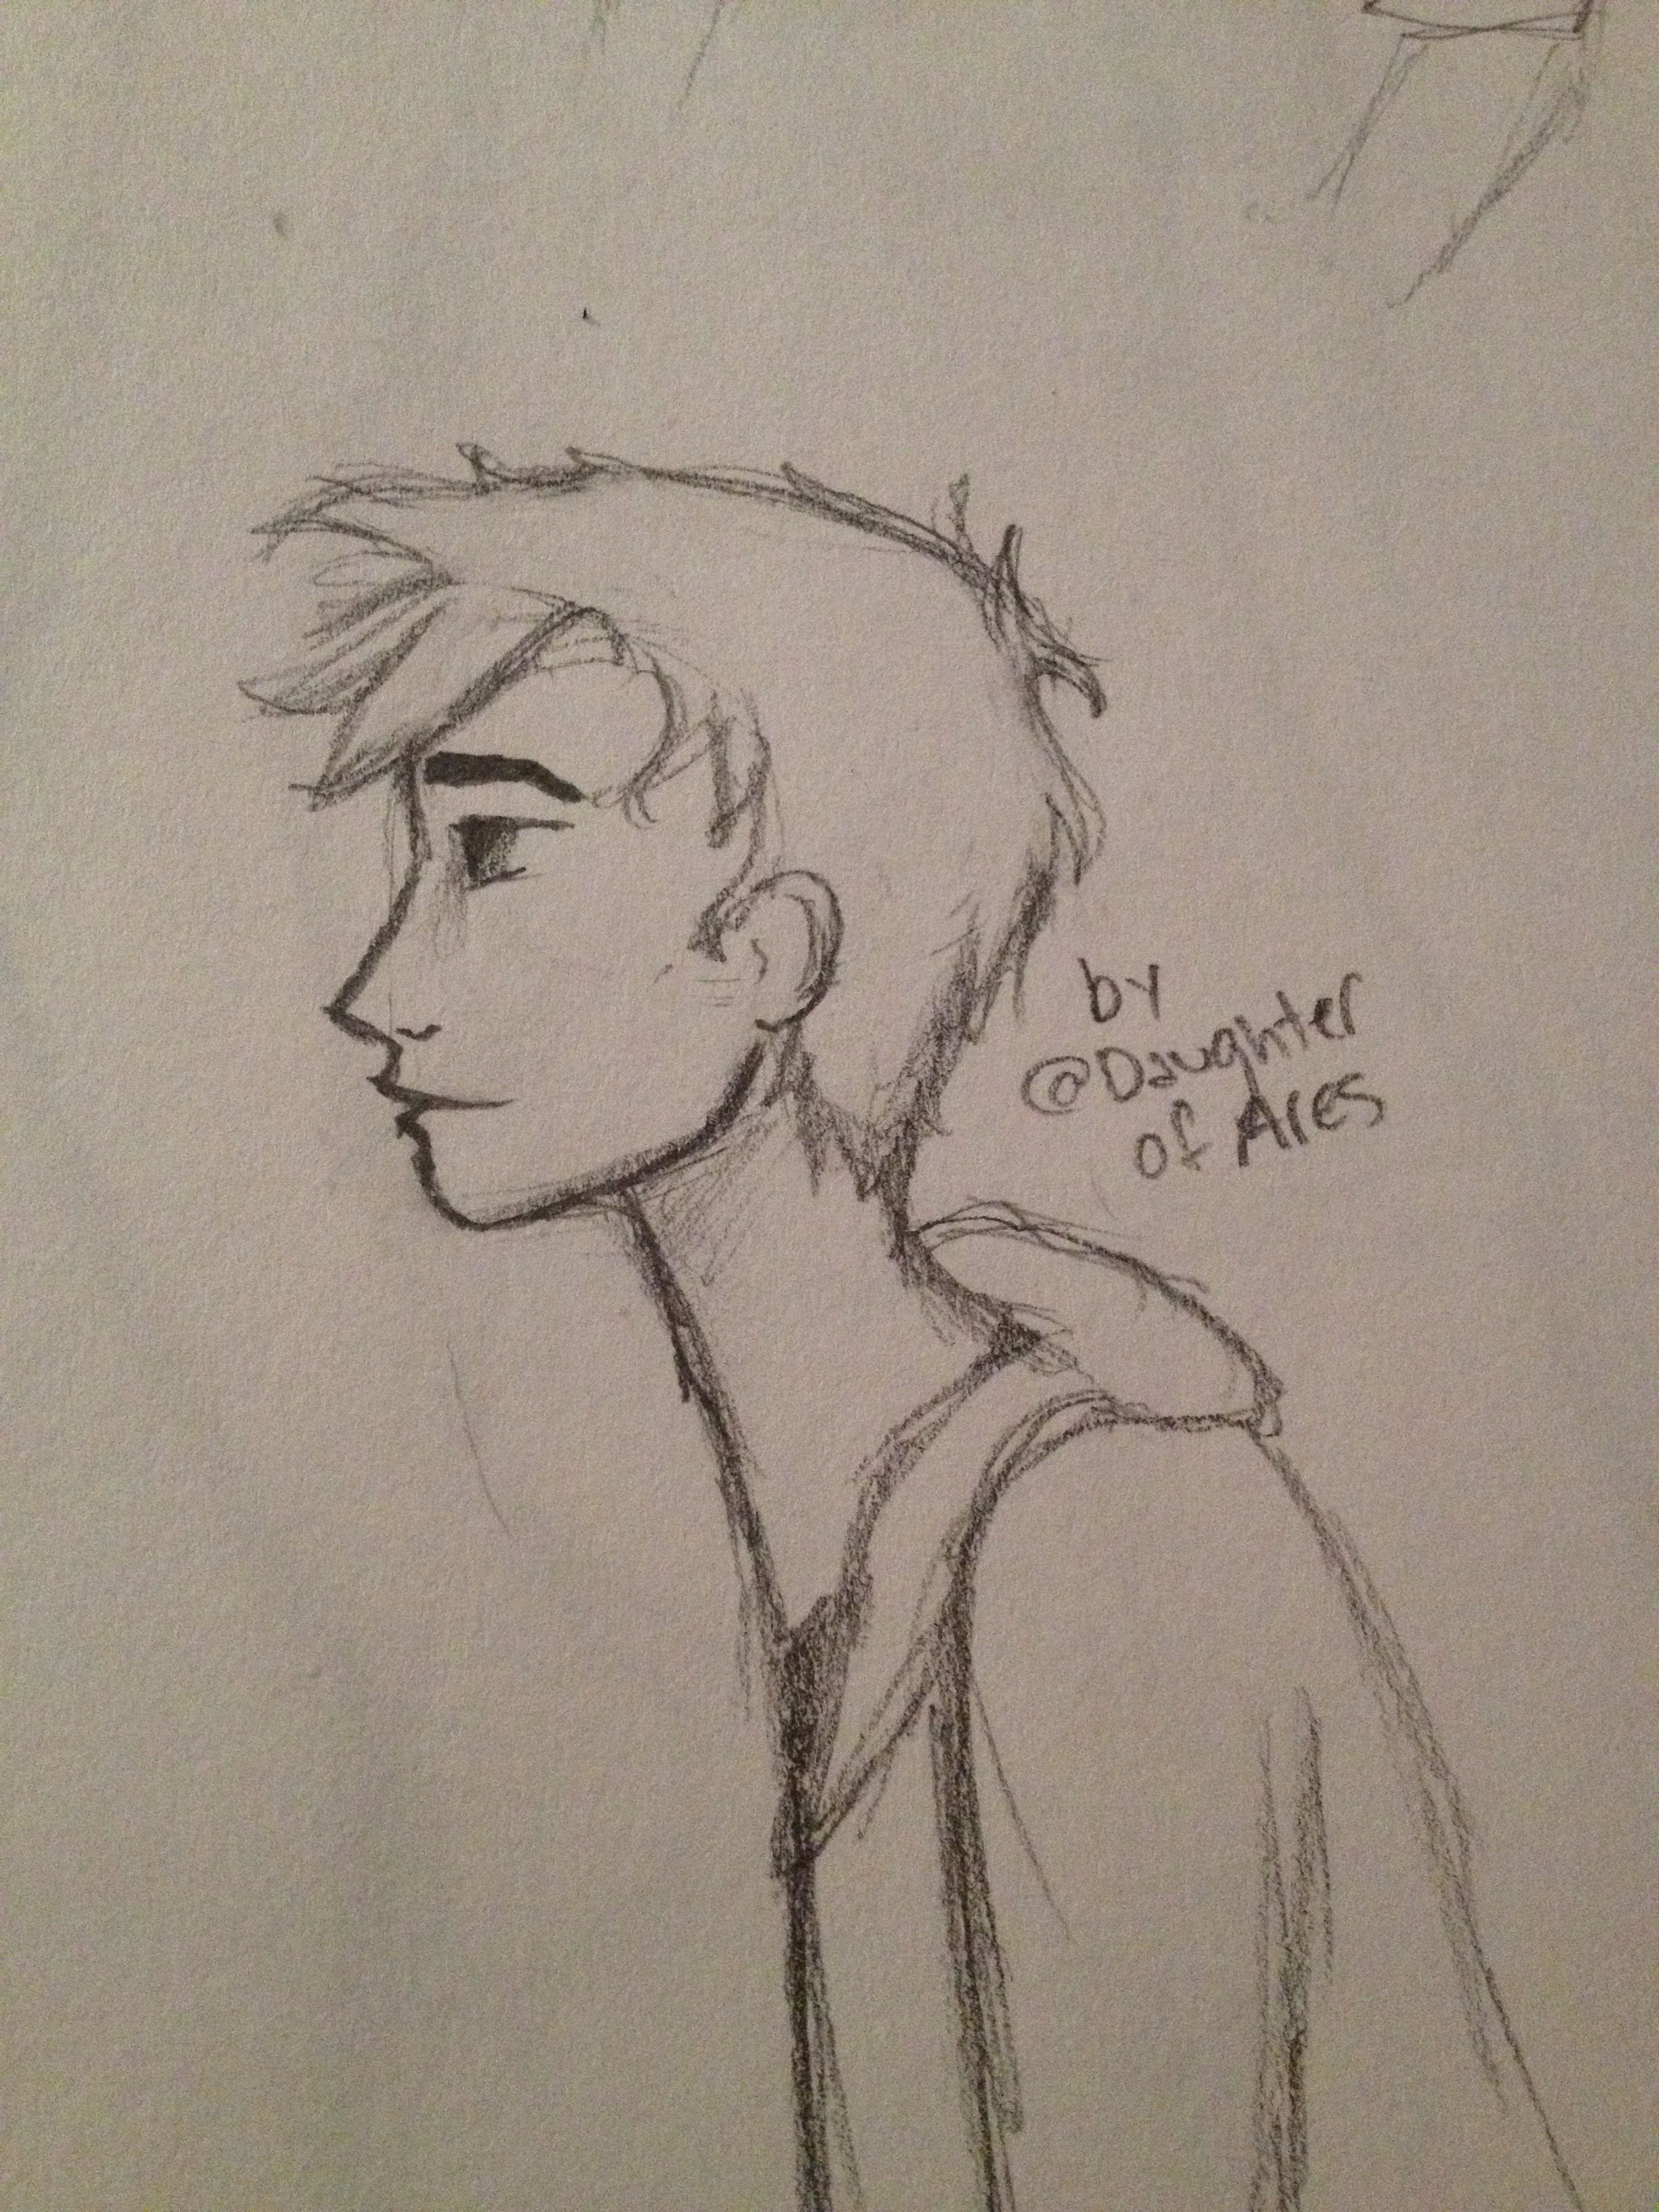 @mcnaknak here's gender bent u :3 I didn't have the right colors so I just did it in pencil lol